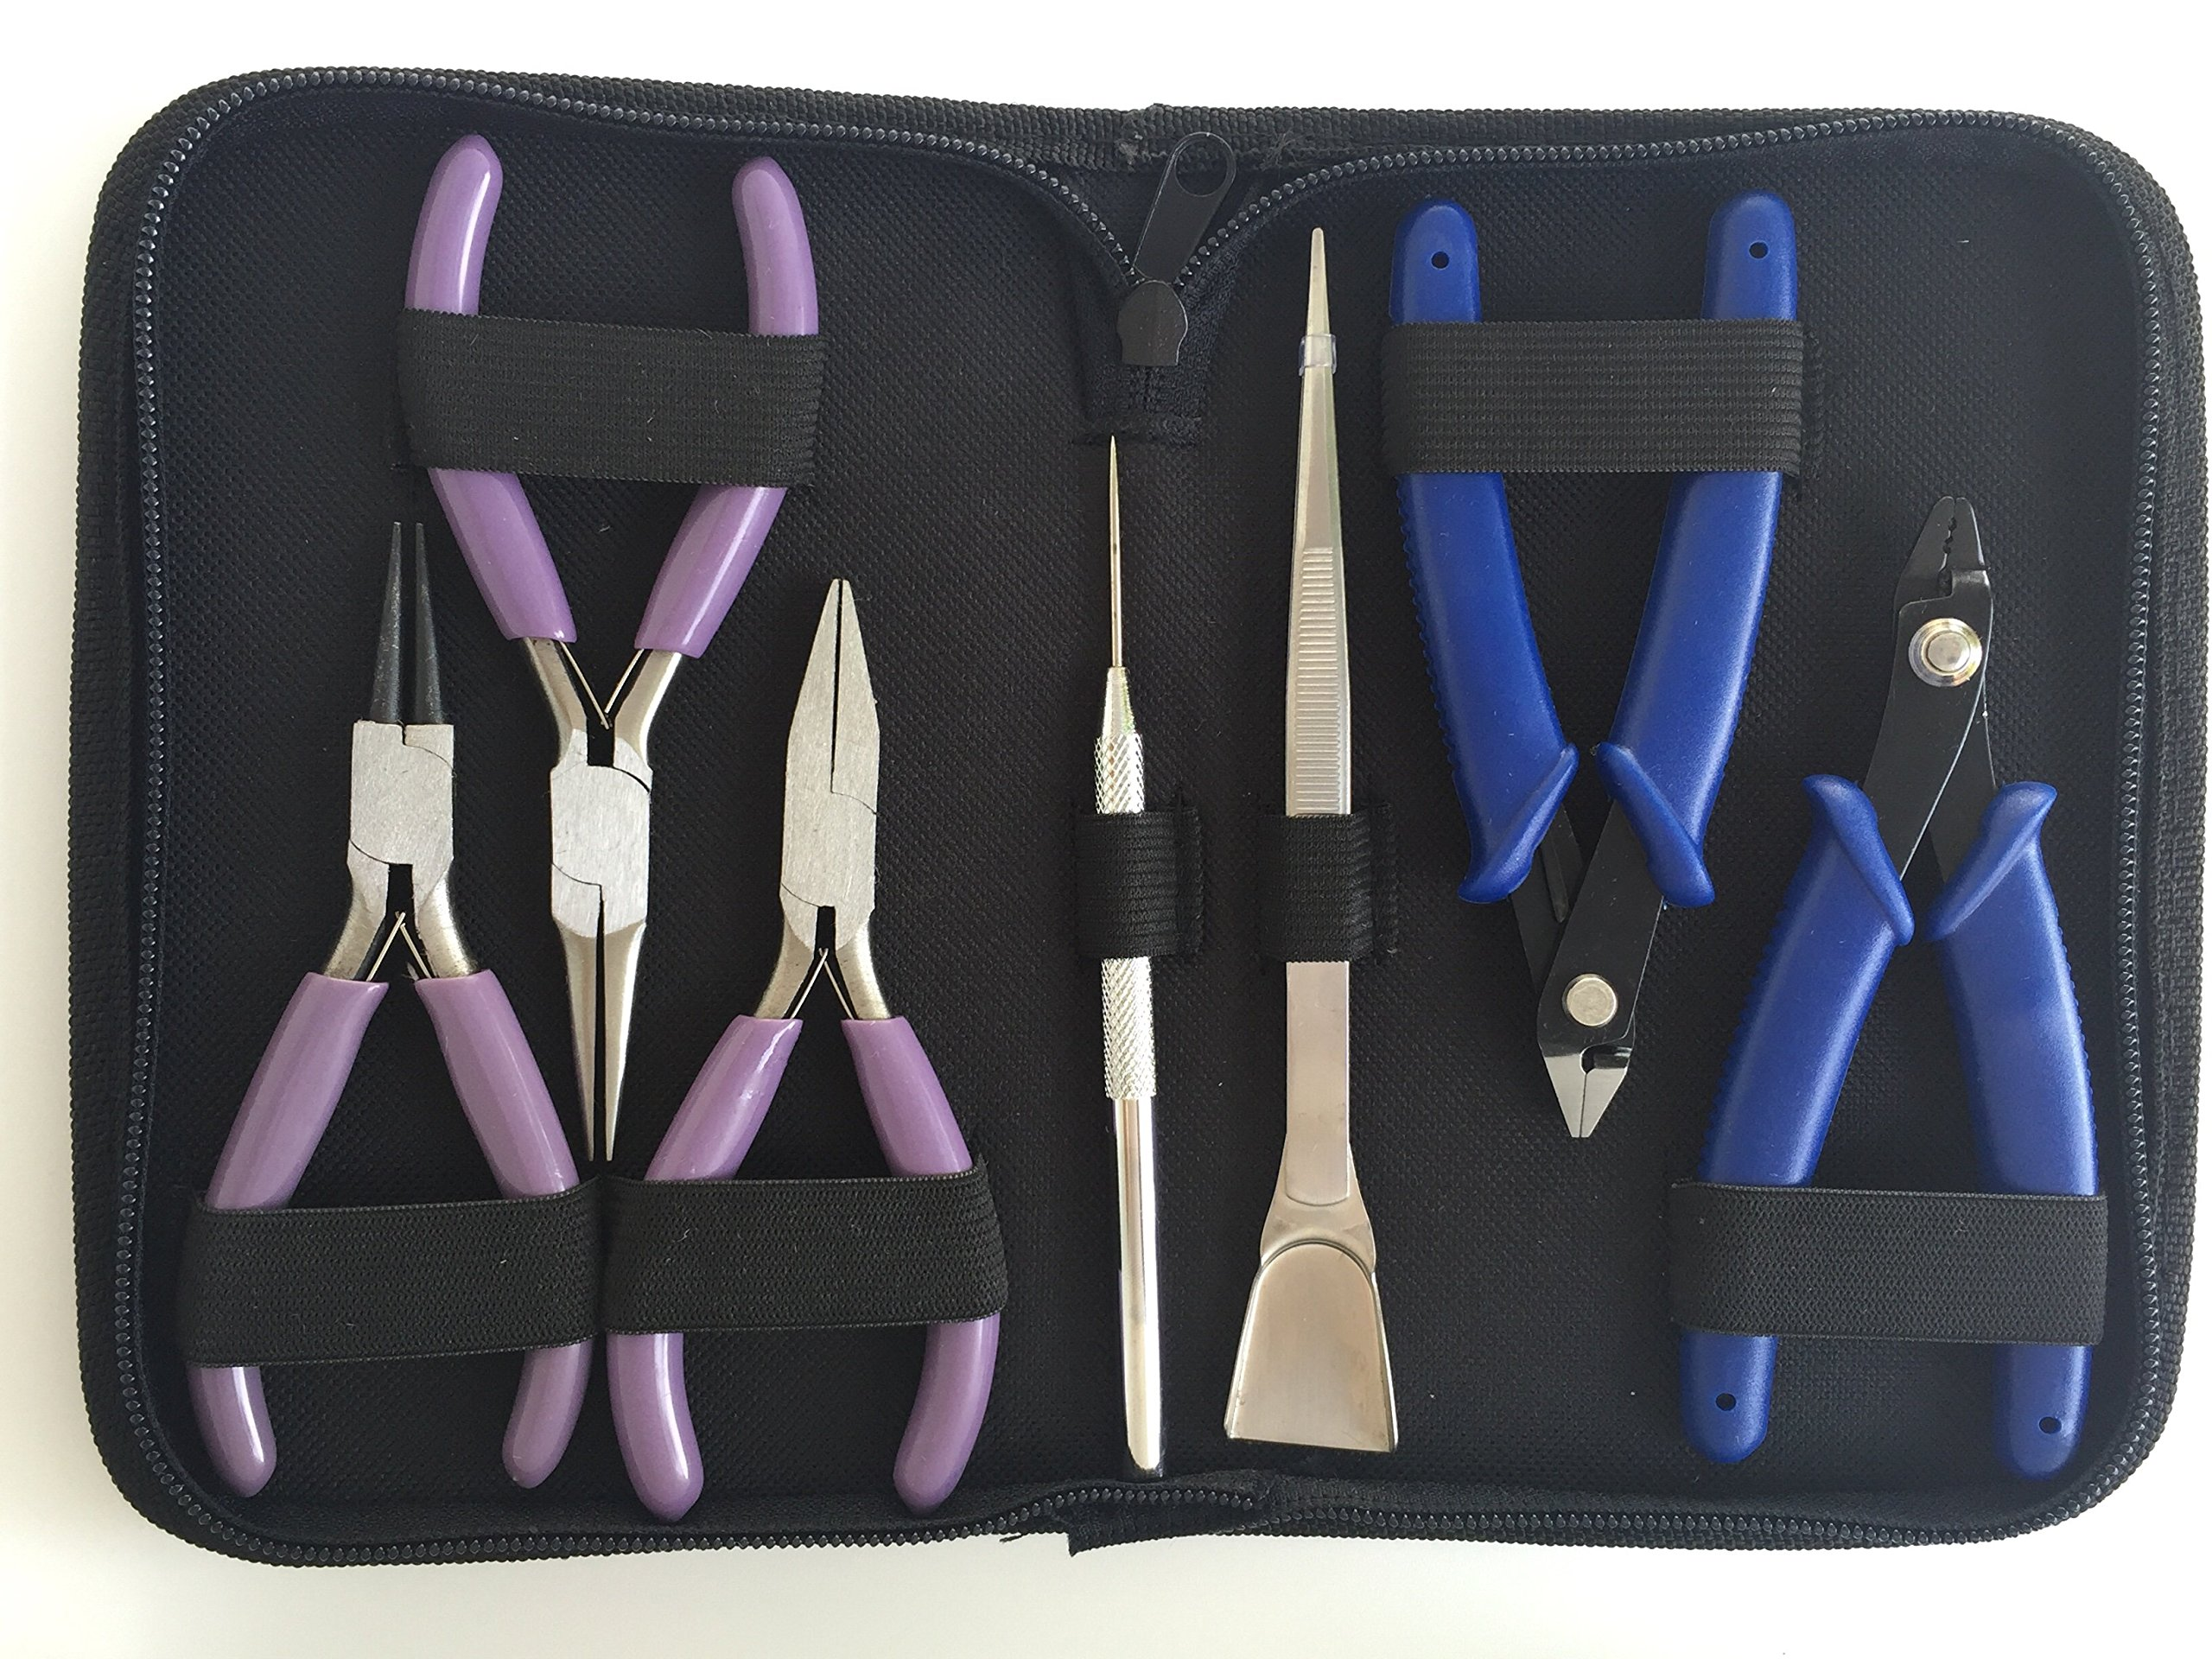 Kem Products Jewelry Tools, High Grade Jewelry Pliers Including the Necessary Crimper, Organized Zipped Case for your Jewelry Making Tools. These jewelry making supplies will help with beading, wire, or repairs by Kem Products